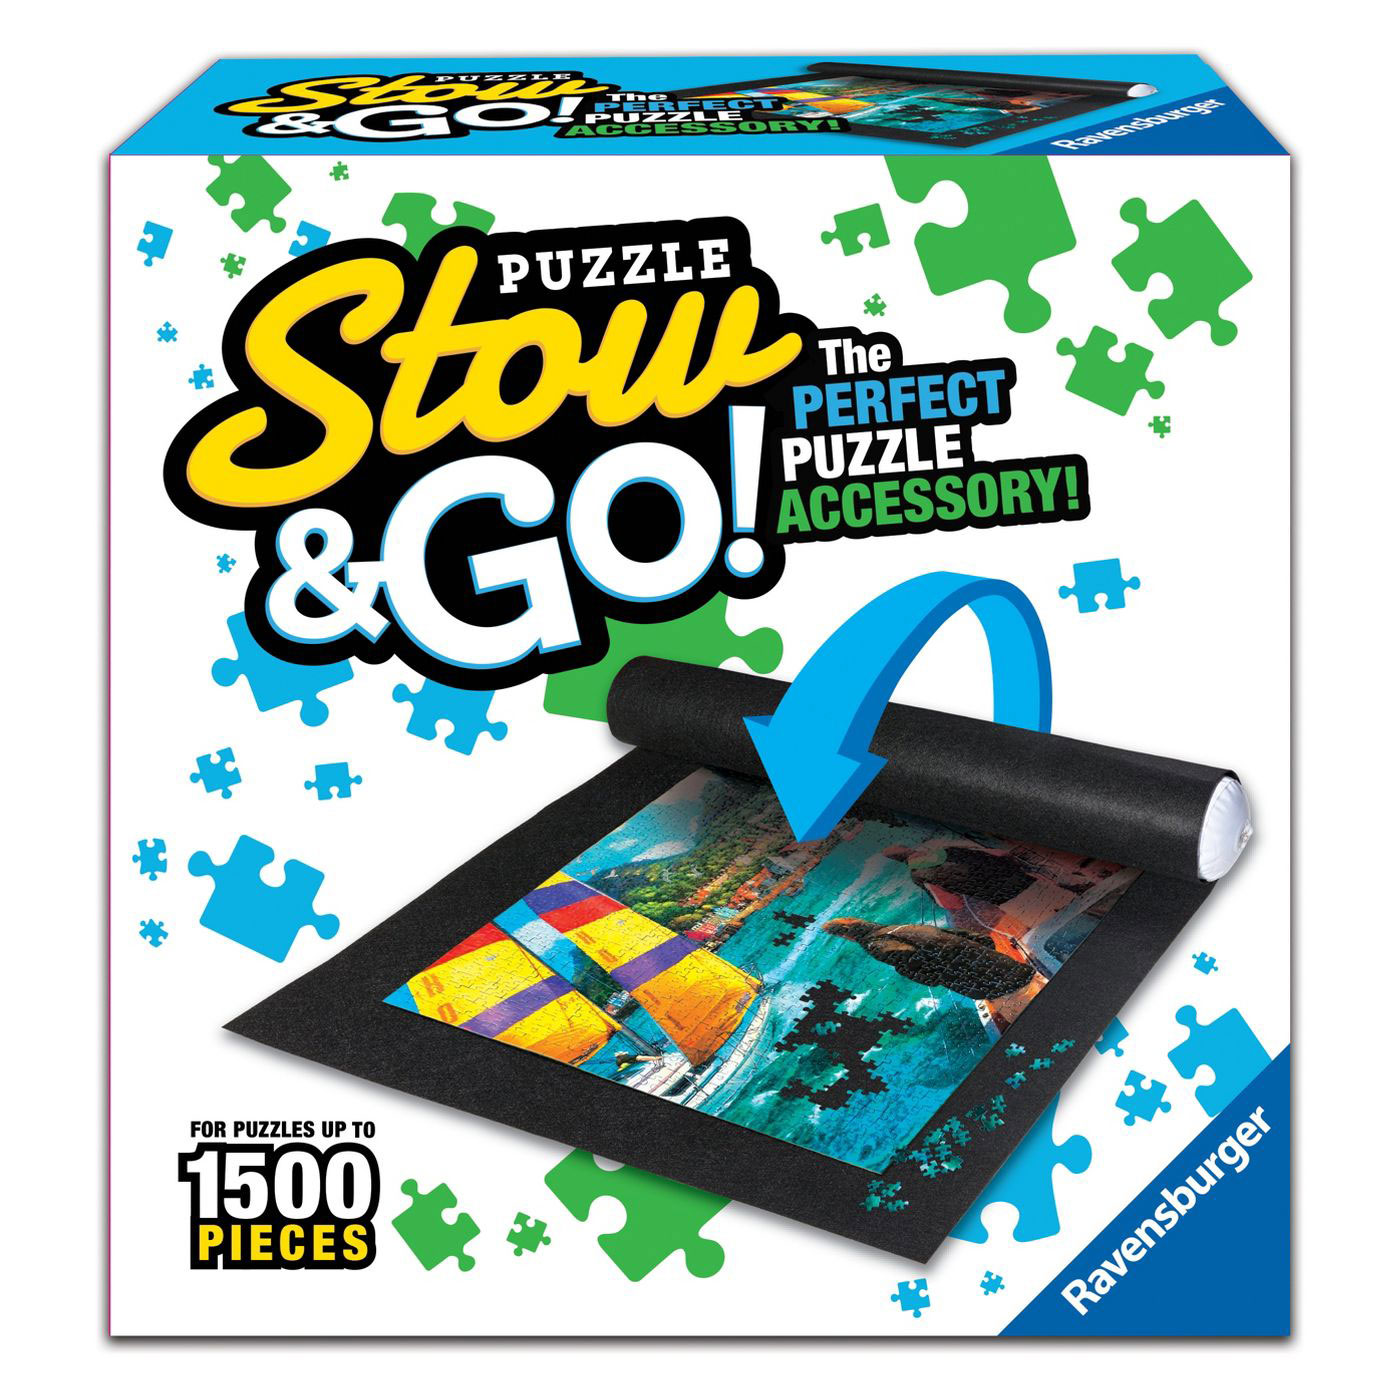 6 Clever Items (1/15/21) - Ravensburger Stow & Go! Puzzle Accessory